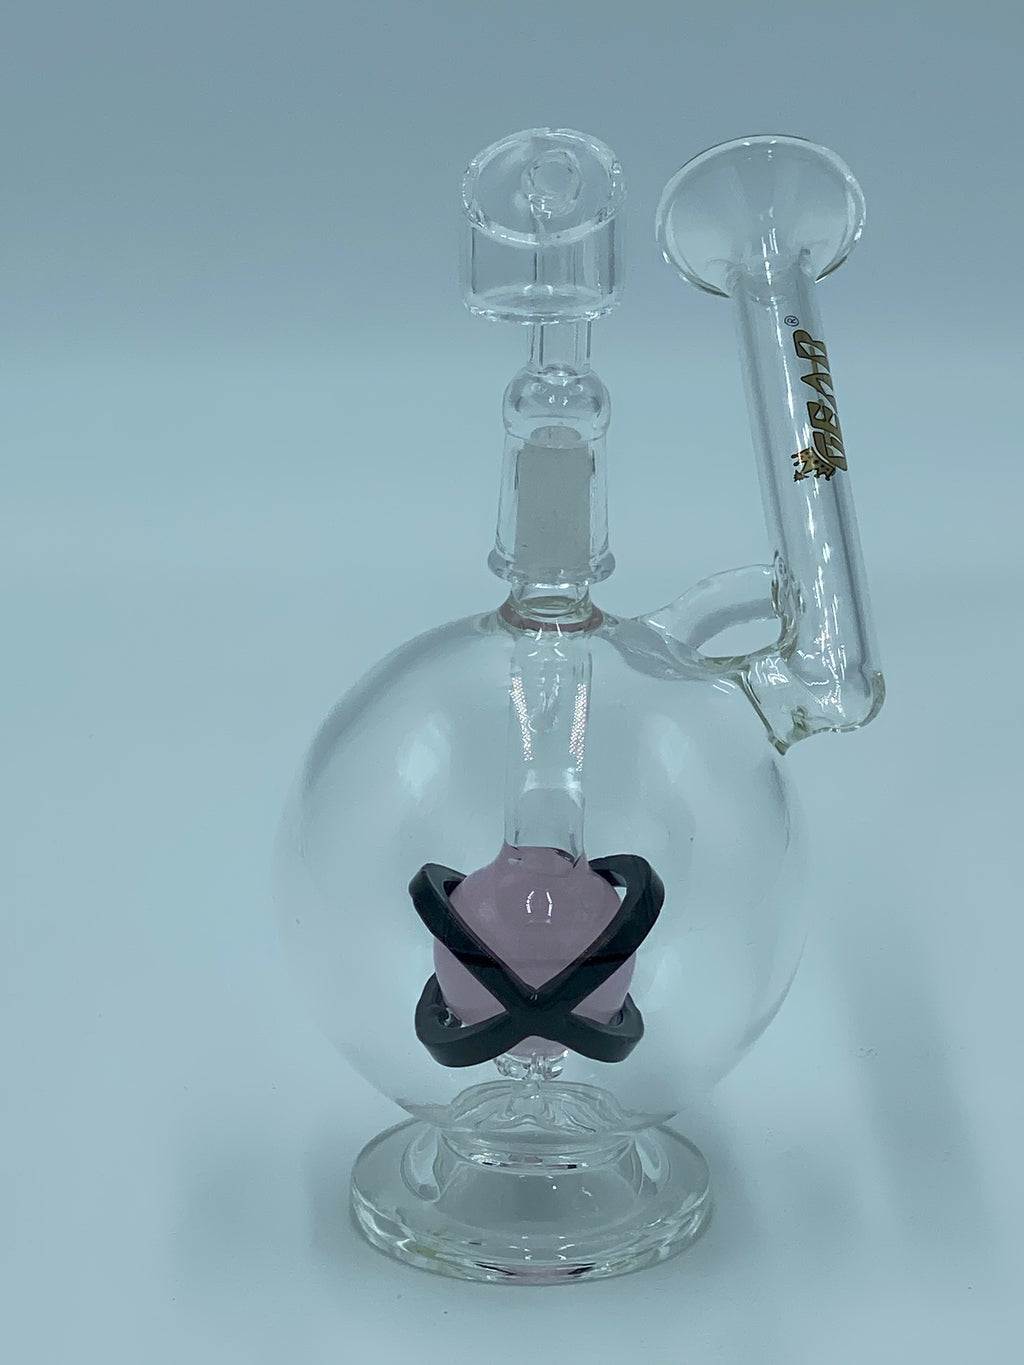 Gear Premium Pink Goblet rig - Smoke Country - Land of the artistic glass blown bongs